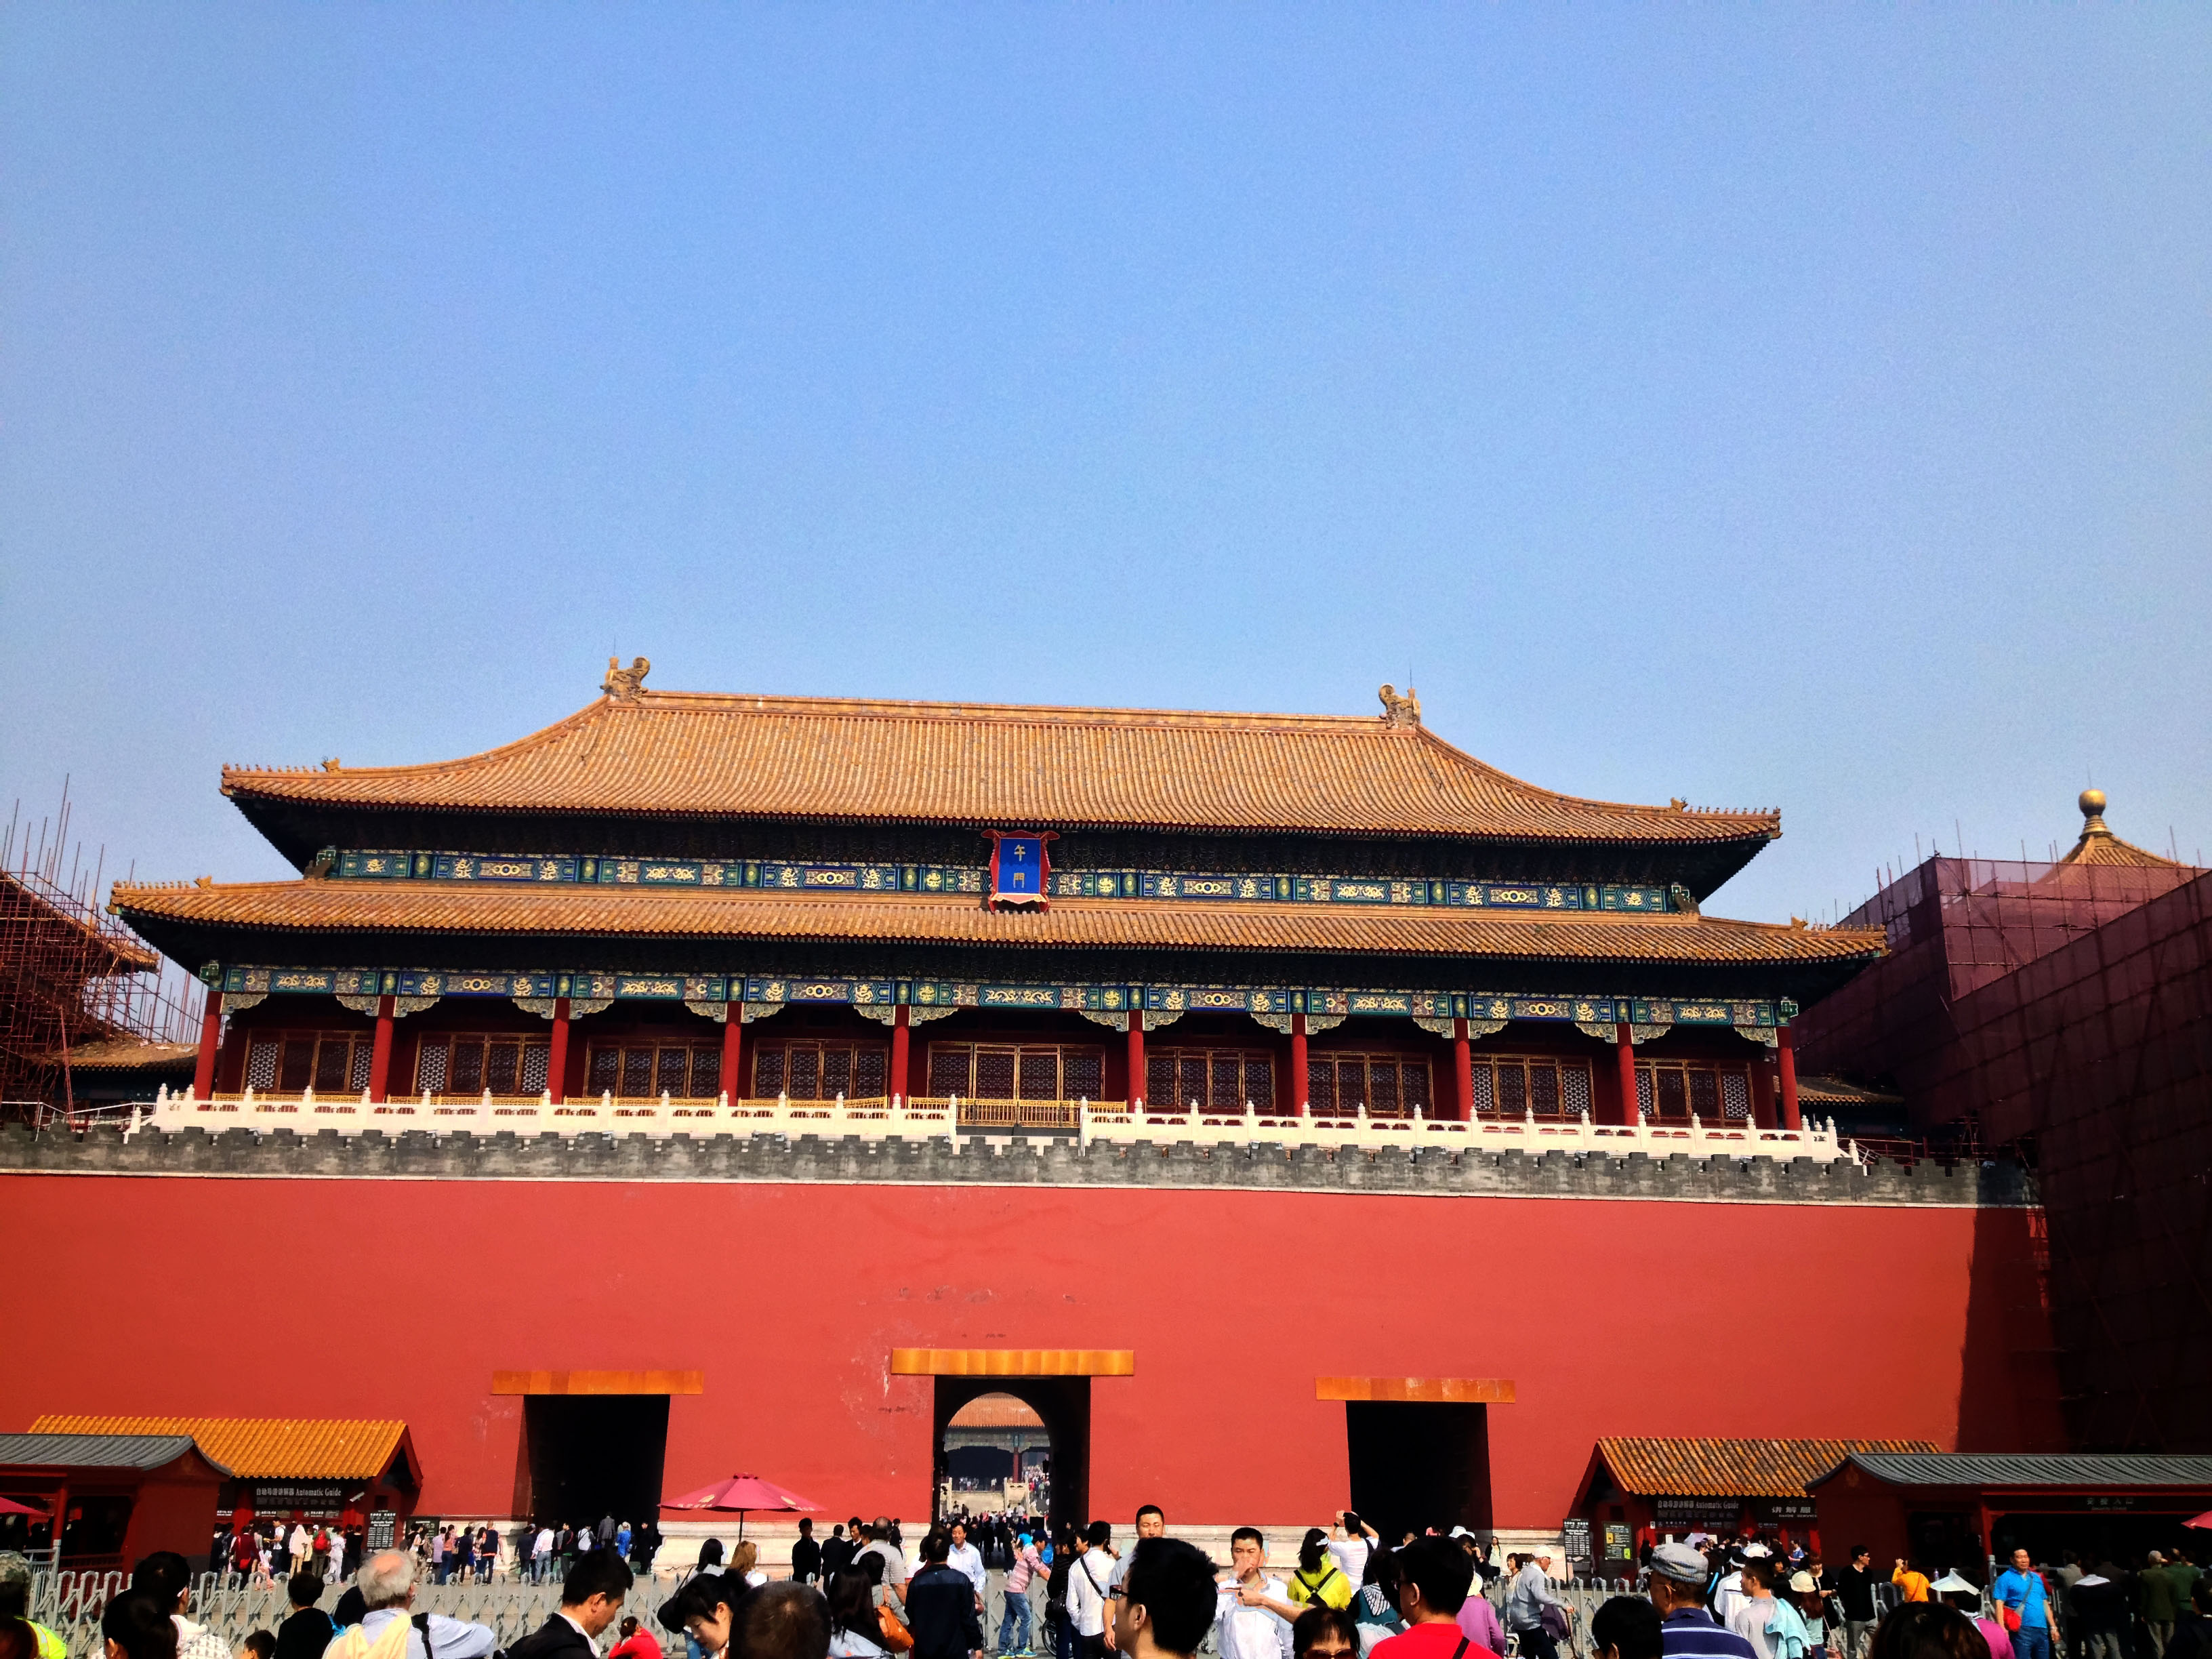 Entrance Gate into the Forbidden City in Beijing. China image - Free stock photo - Public Domain photo - CC0 Images